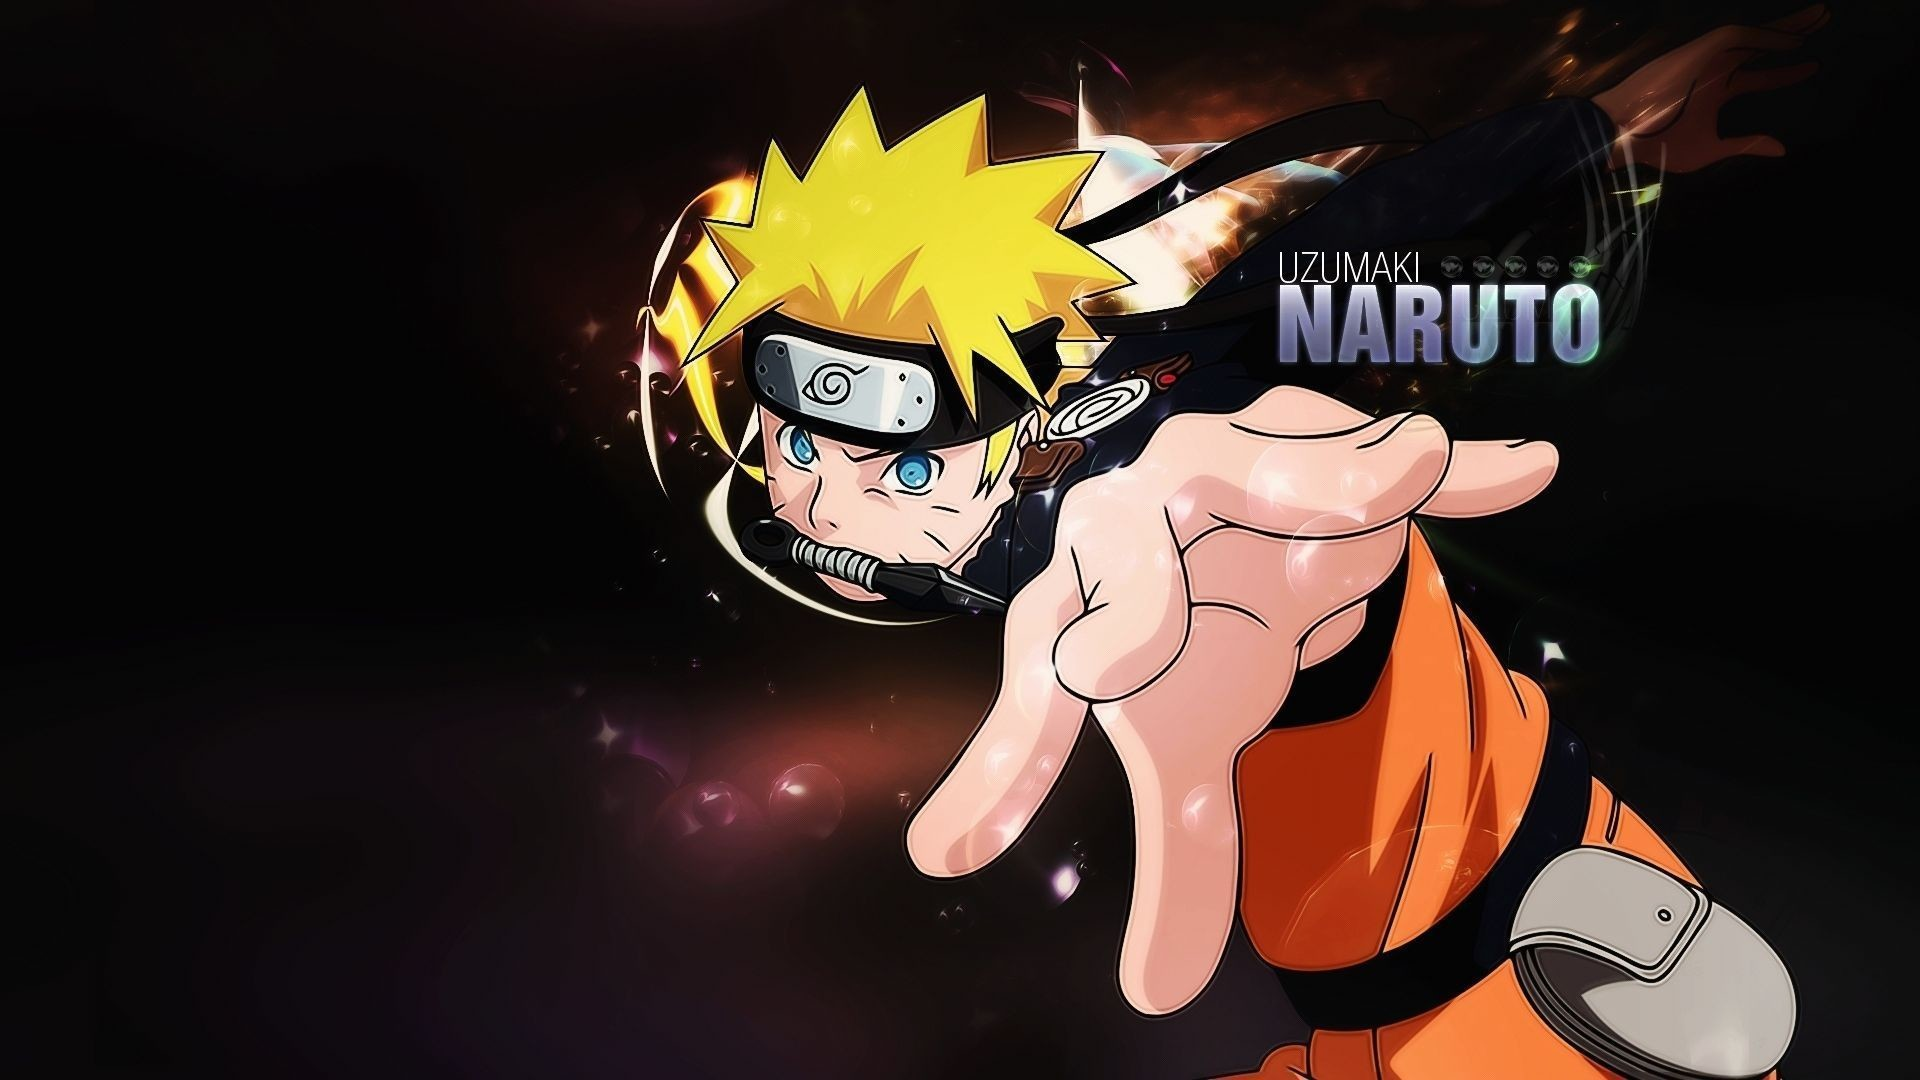 Hands, Blue eyes, Black background, Guy, naruto wallpapers and .